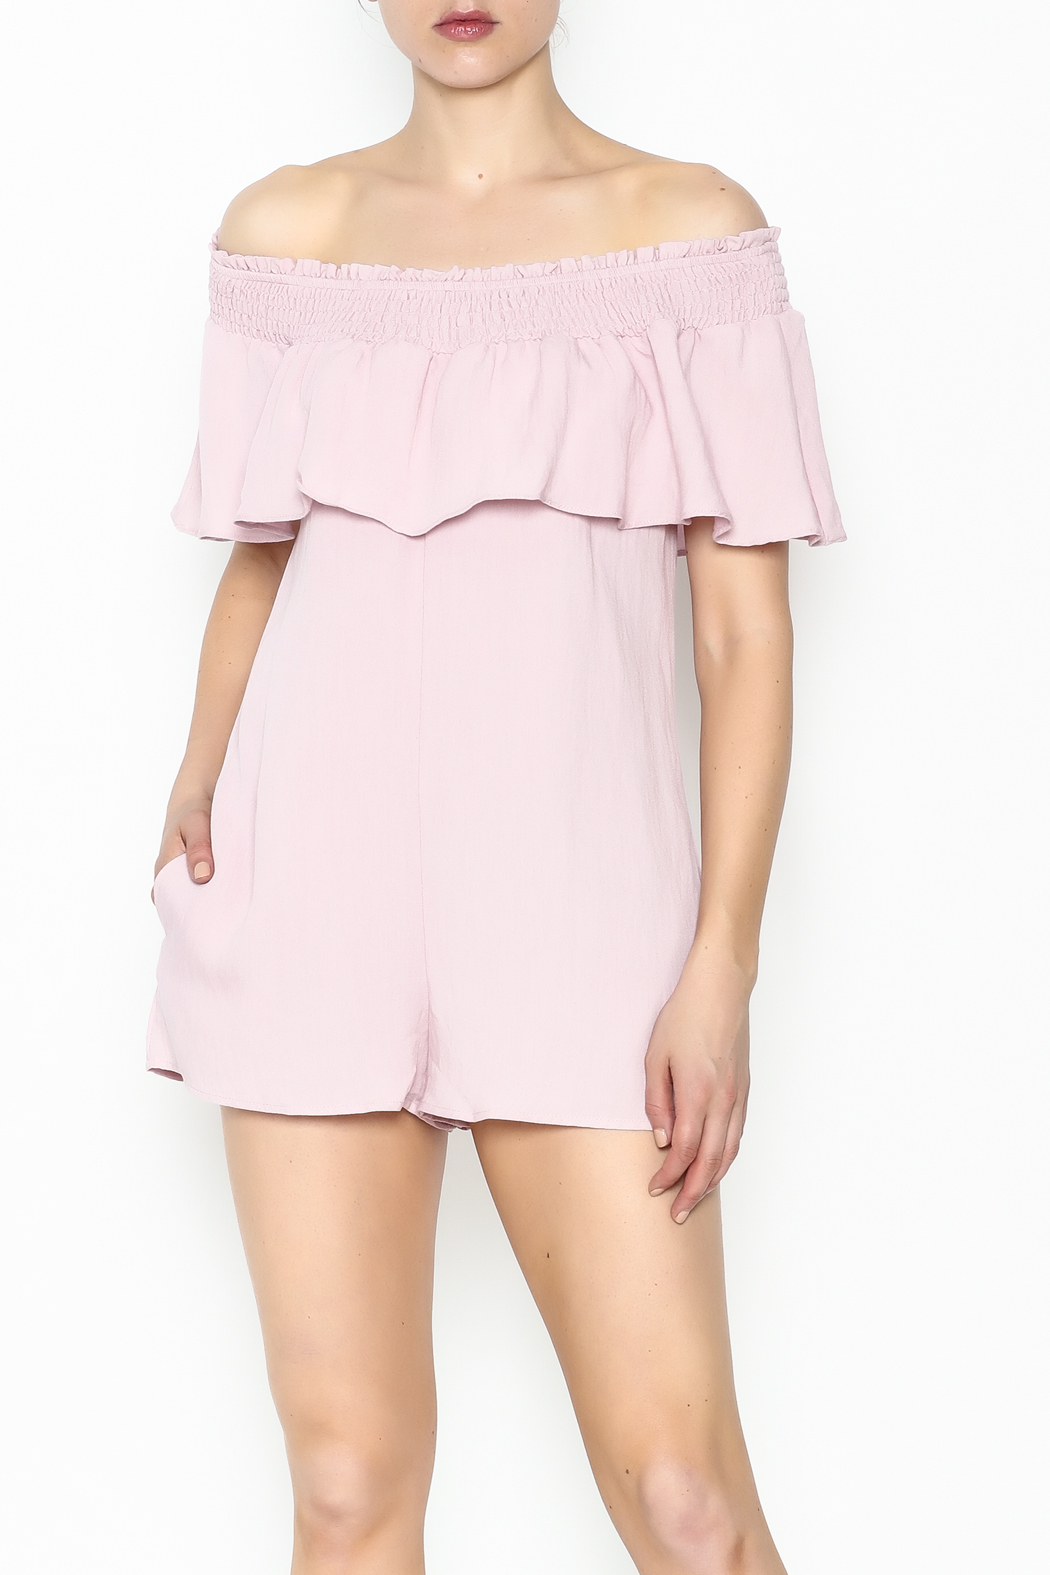 Cotton Candy LA Off The Shoudler Romper - Front Cropped Image